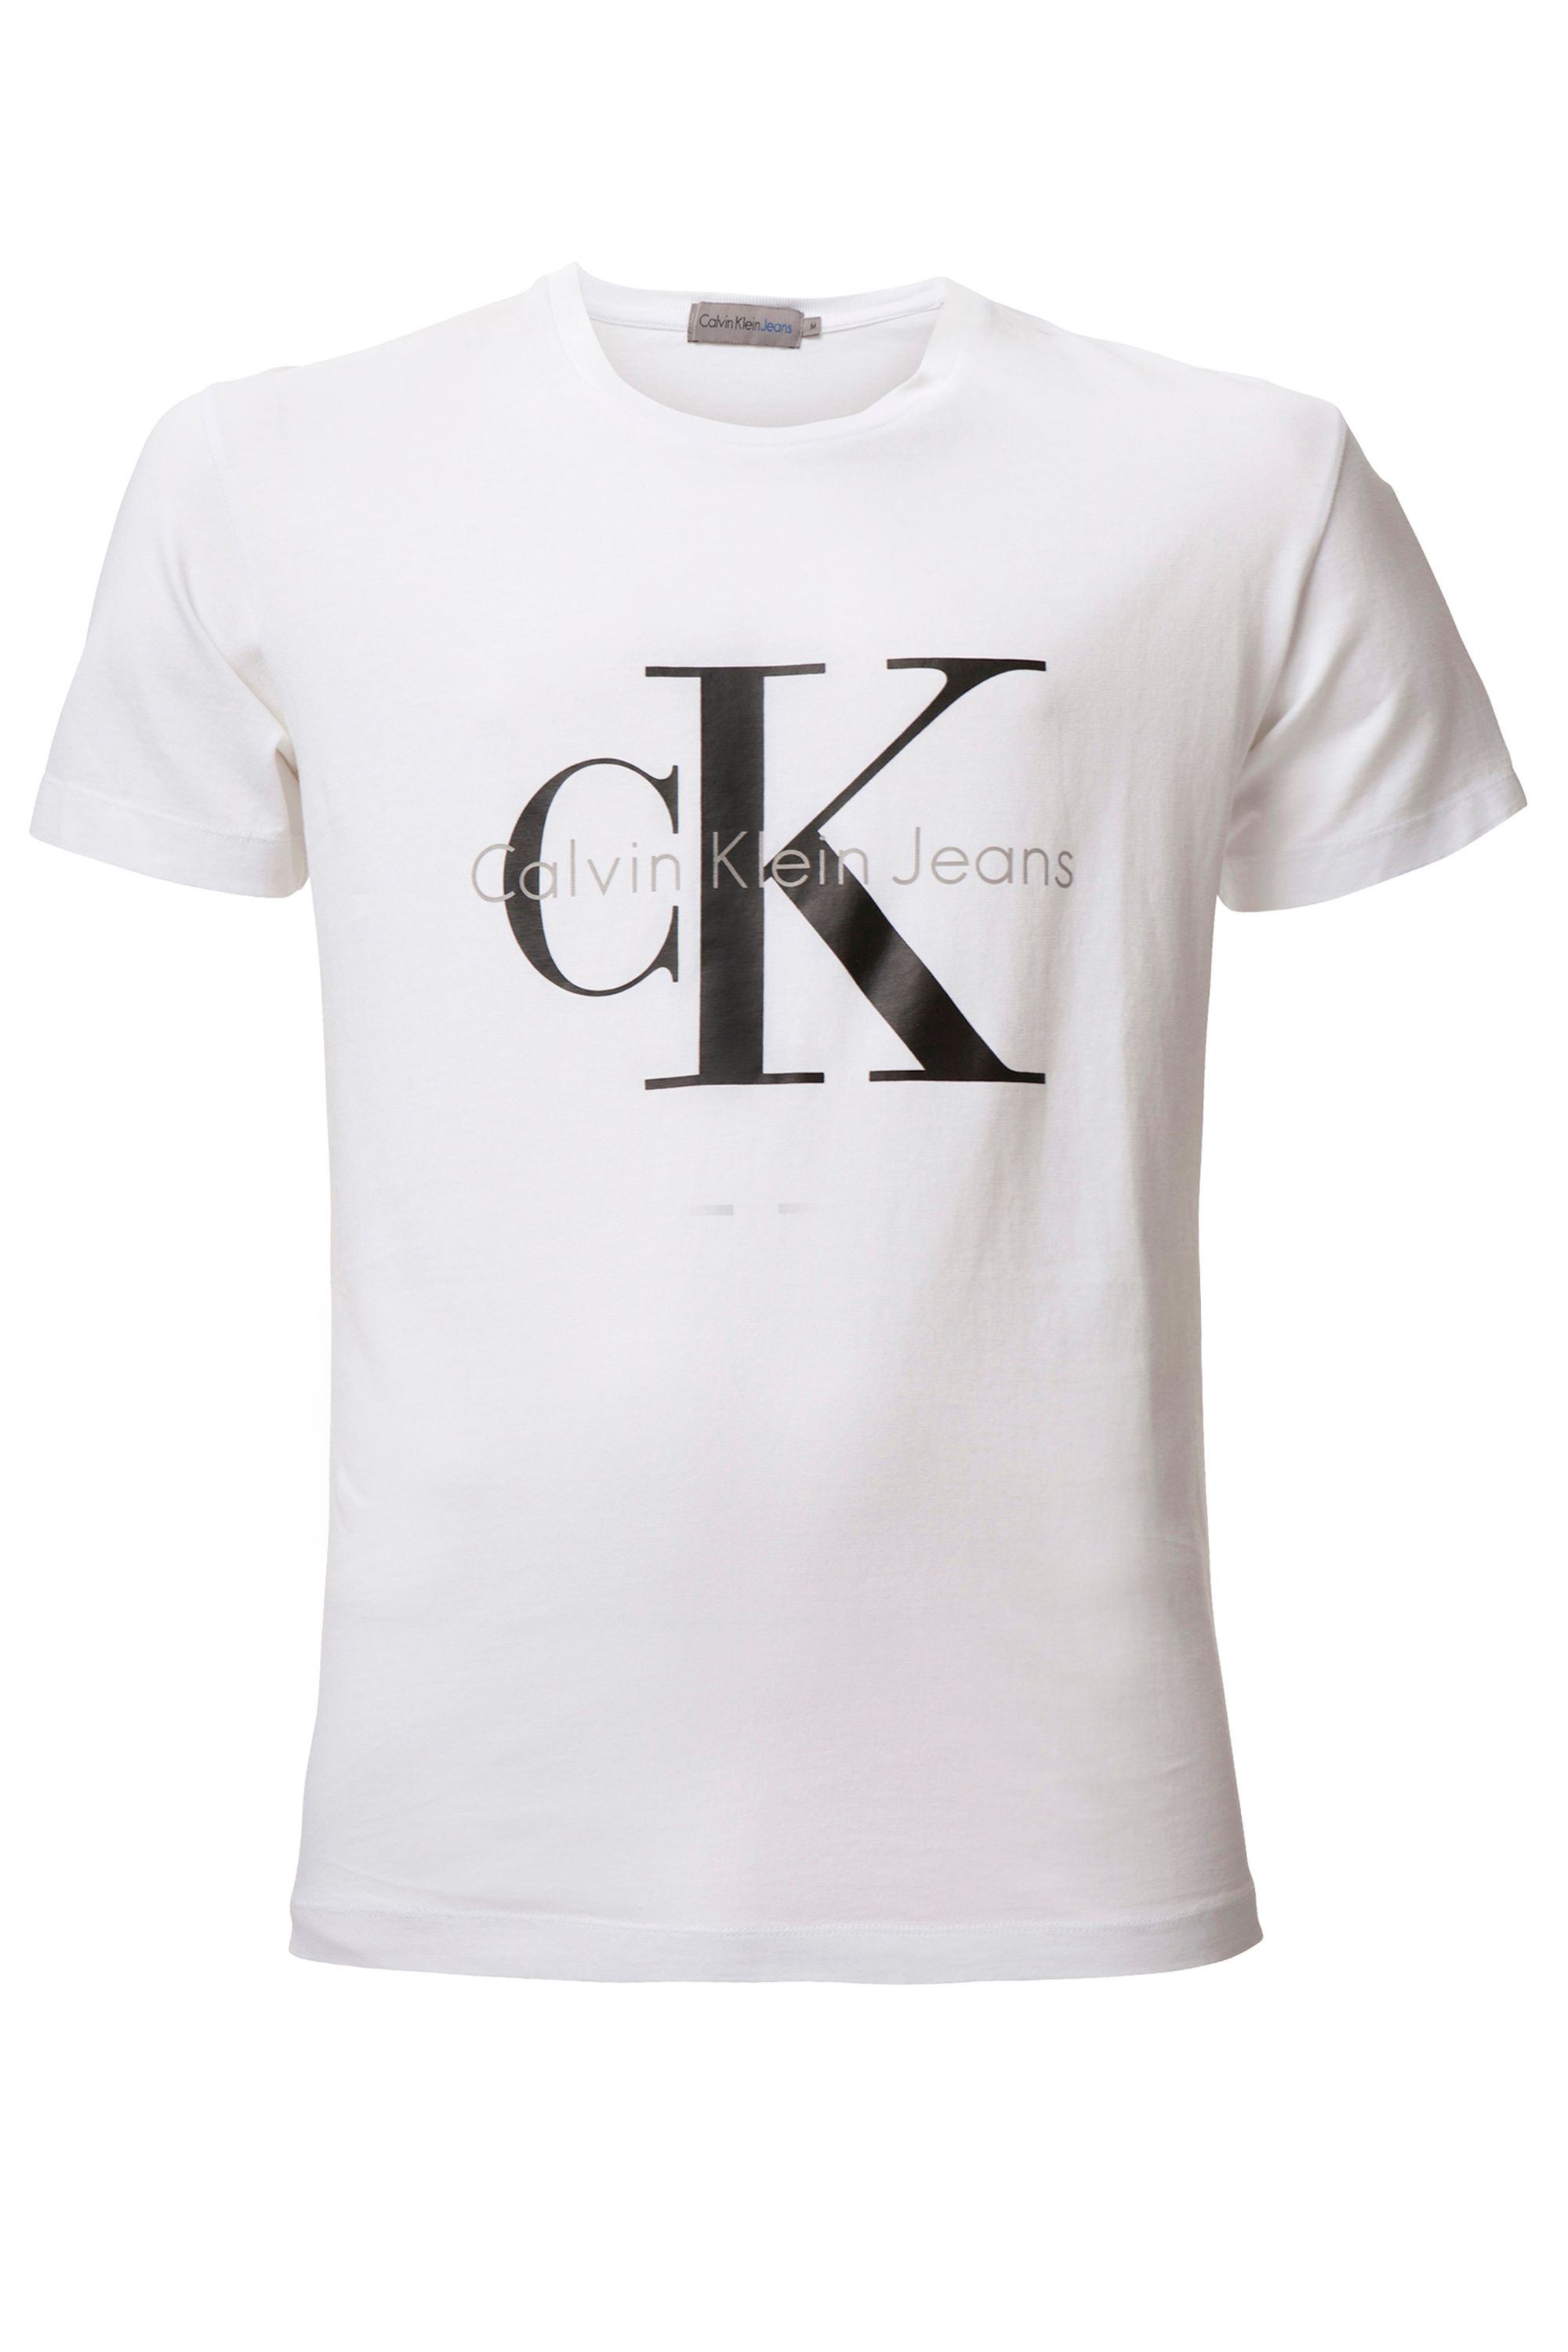 Men's Calvin Klein Tee true icon cn s/s t-shirt, White